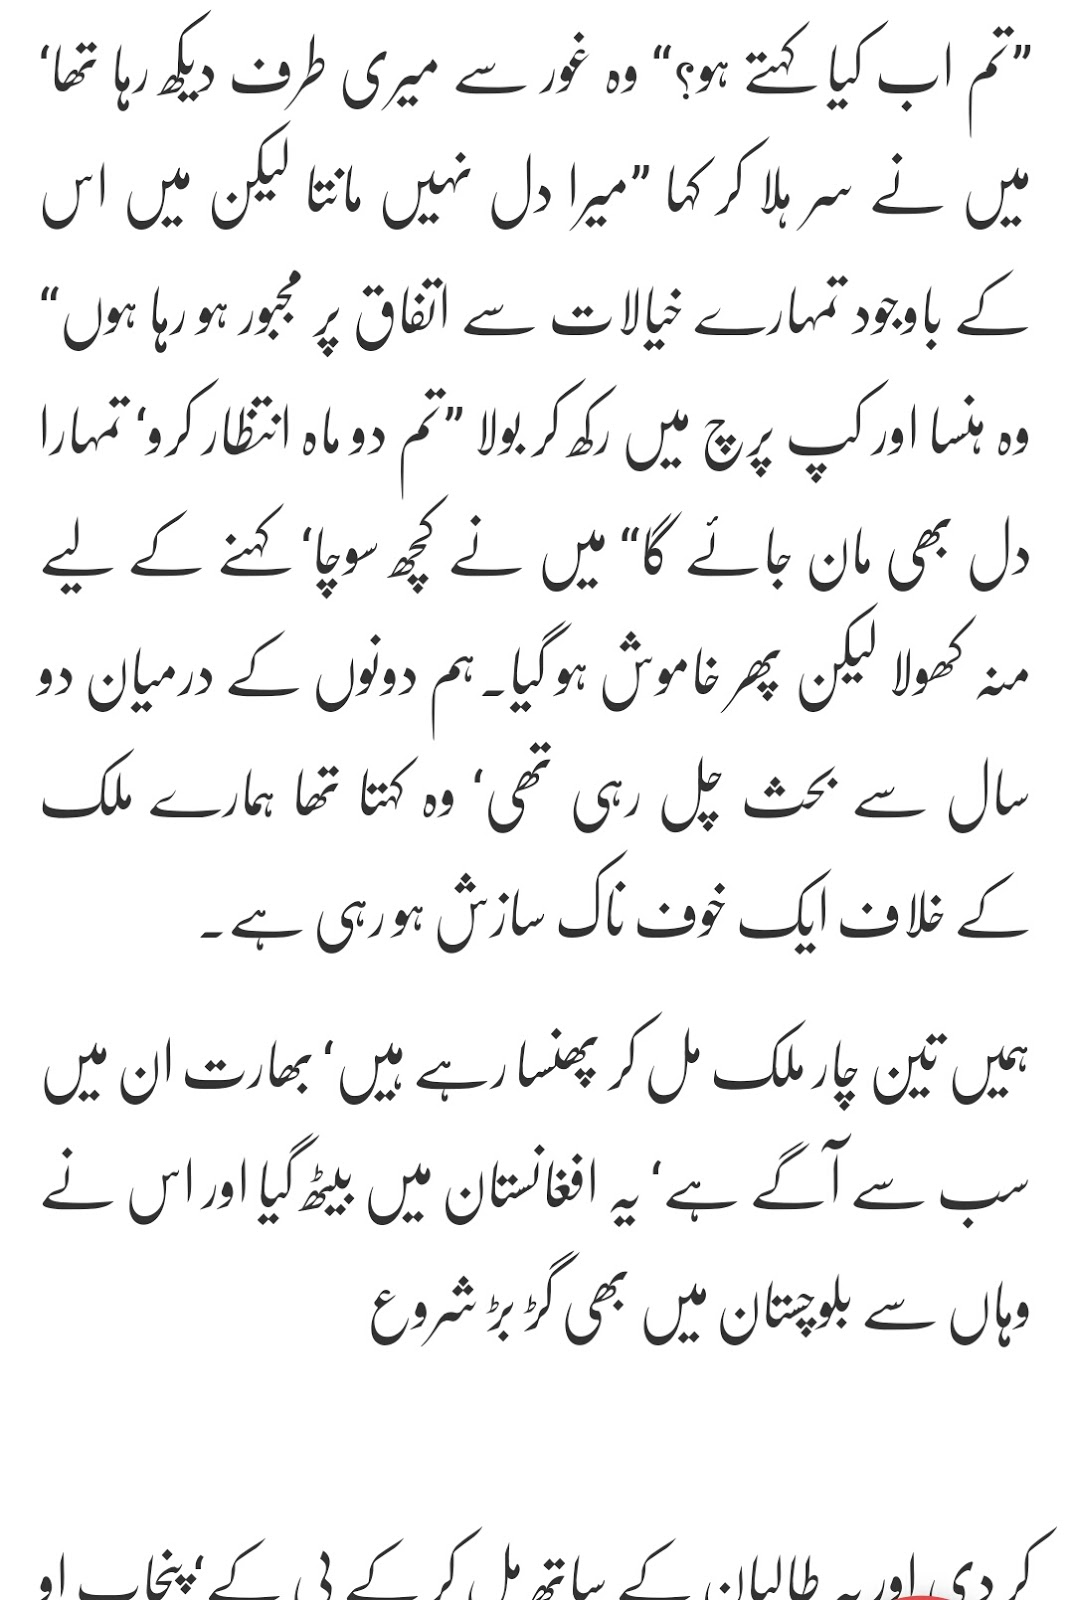 Hassan Nisar today Urdu Column dated:24 August 2019